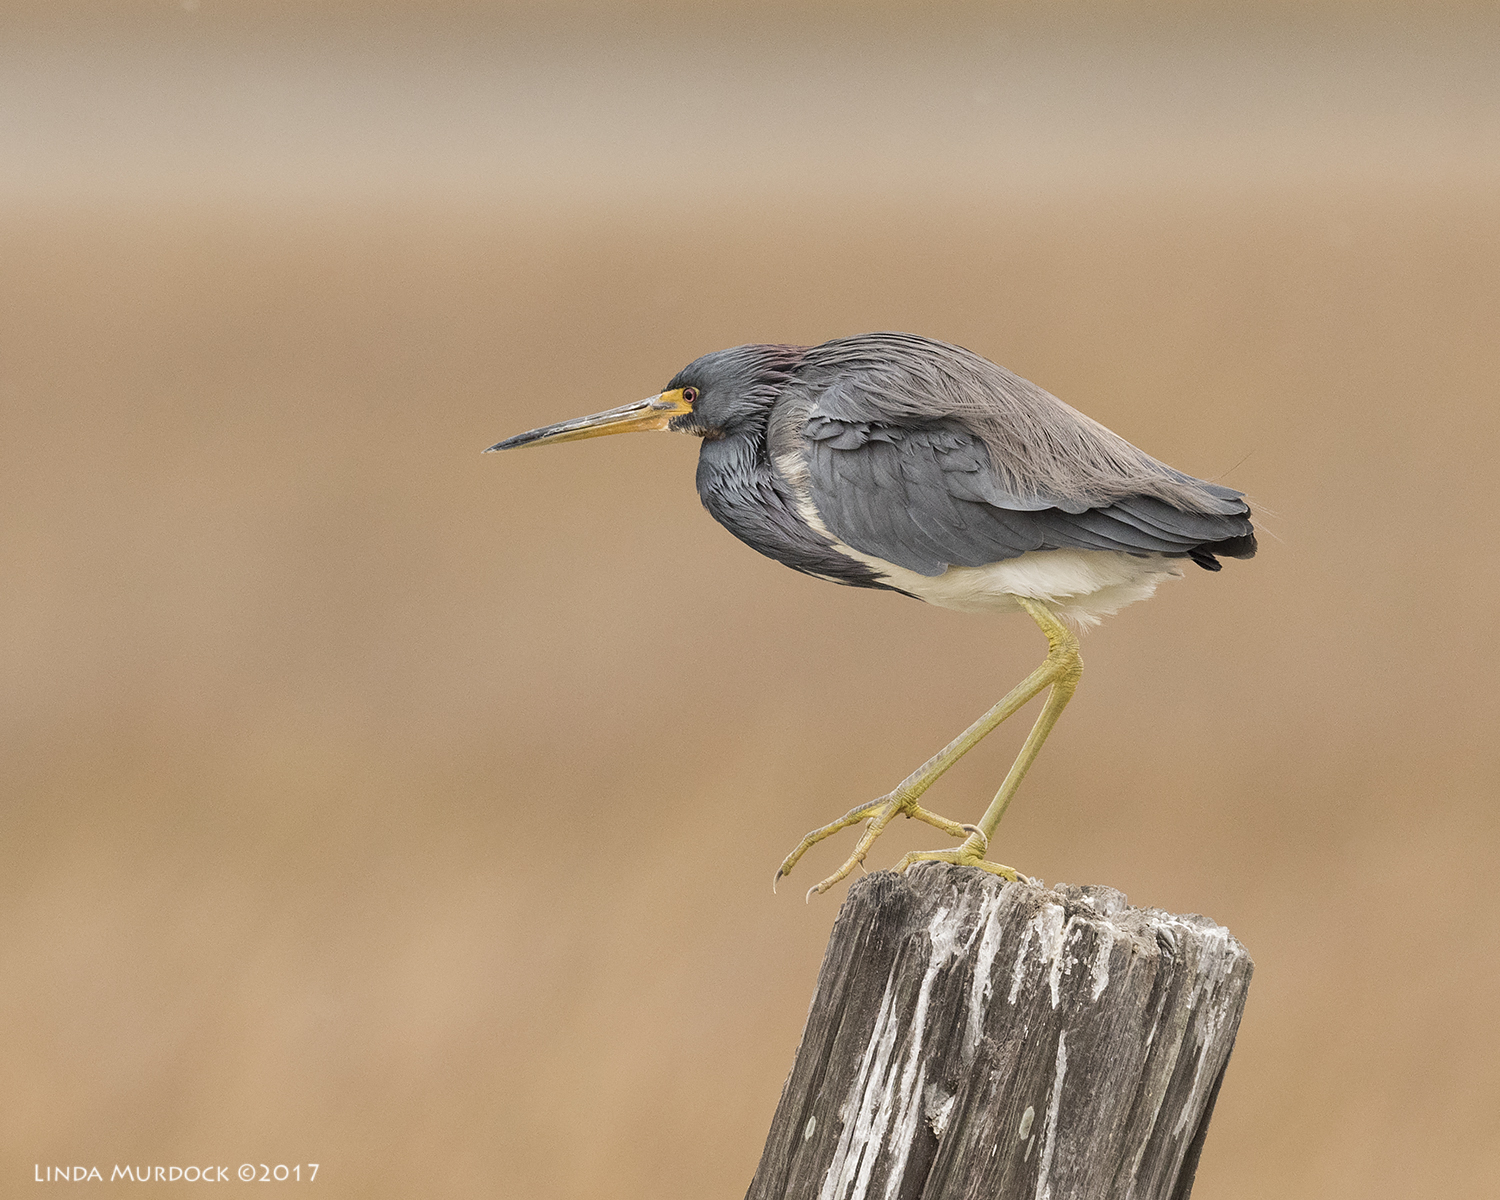 Tricolored Heron thinks about flying off    Nikon D810 with NIKKOR 500mm f/4E VR + Nikon 1.4x TC ~ 1/1250   sec f/6.3 ISO 1000; tripod